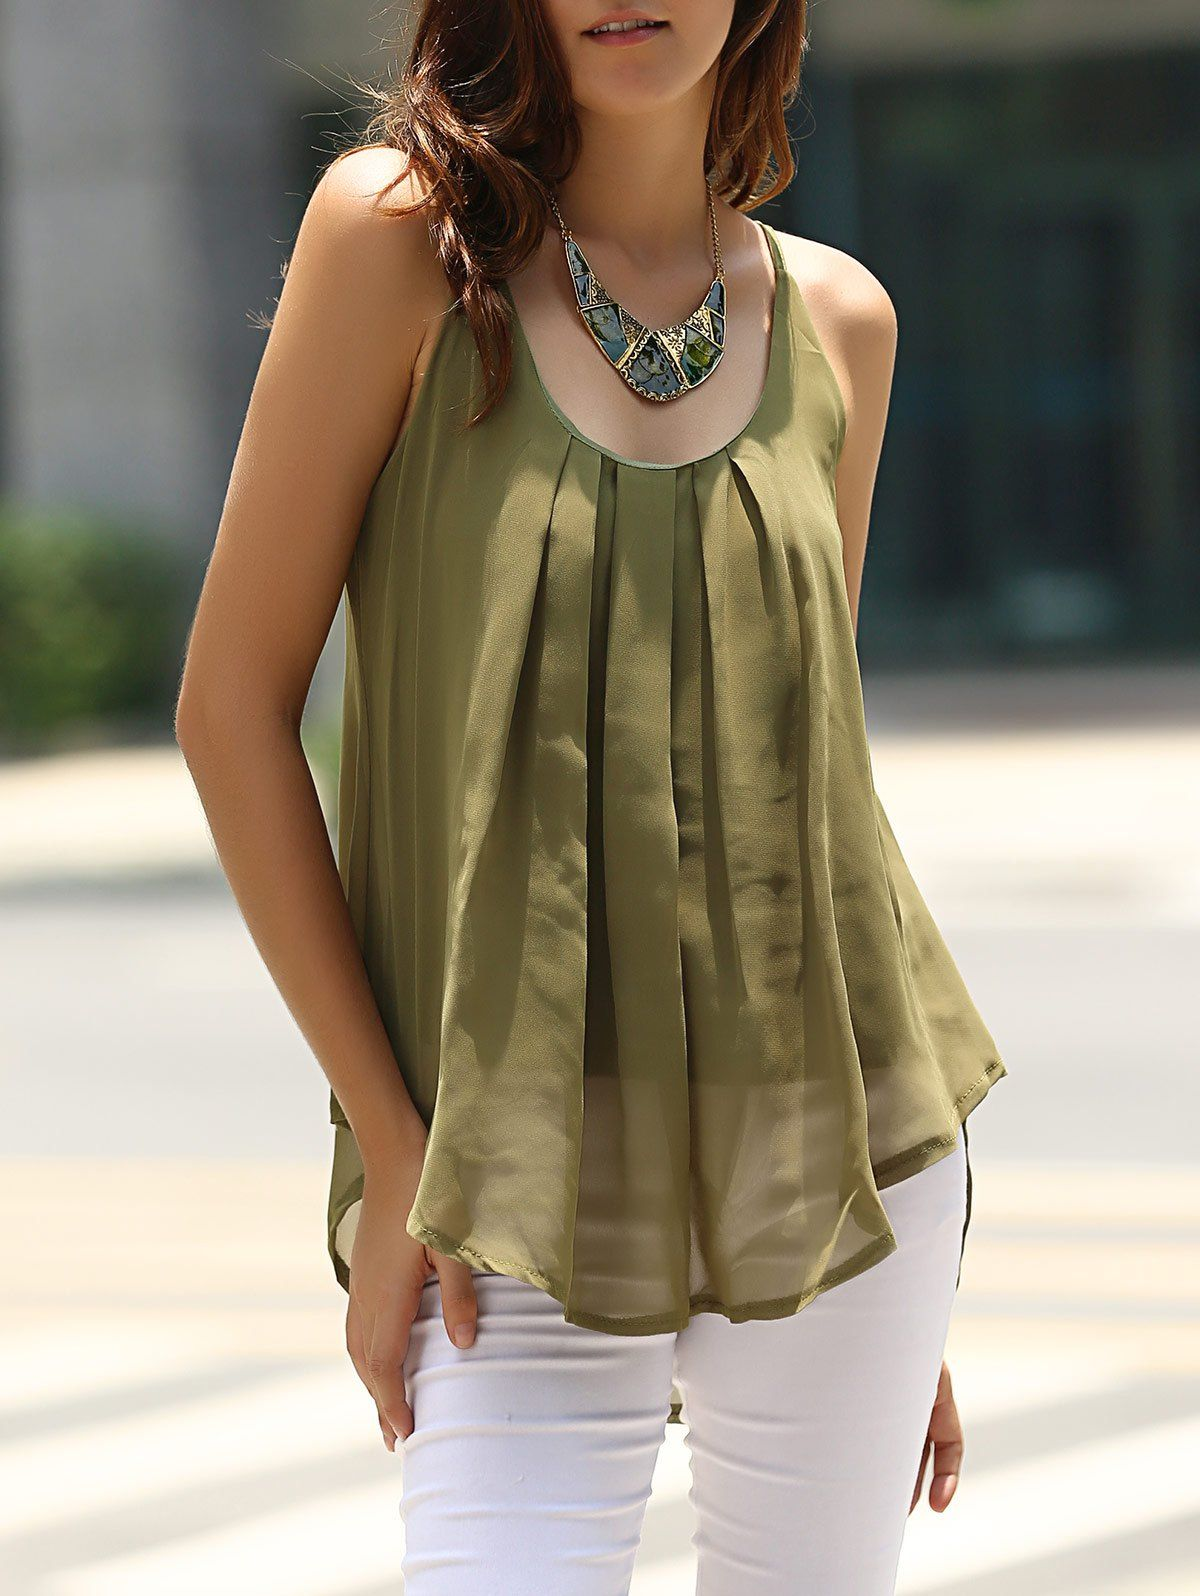 Charming Spaghetti Strap Solid Color Chiffon Tank Top For Women Vests & Tank Tops | RoseGal.com